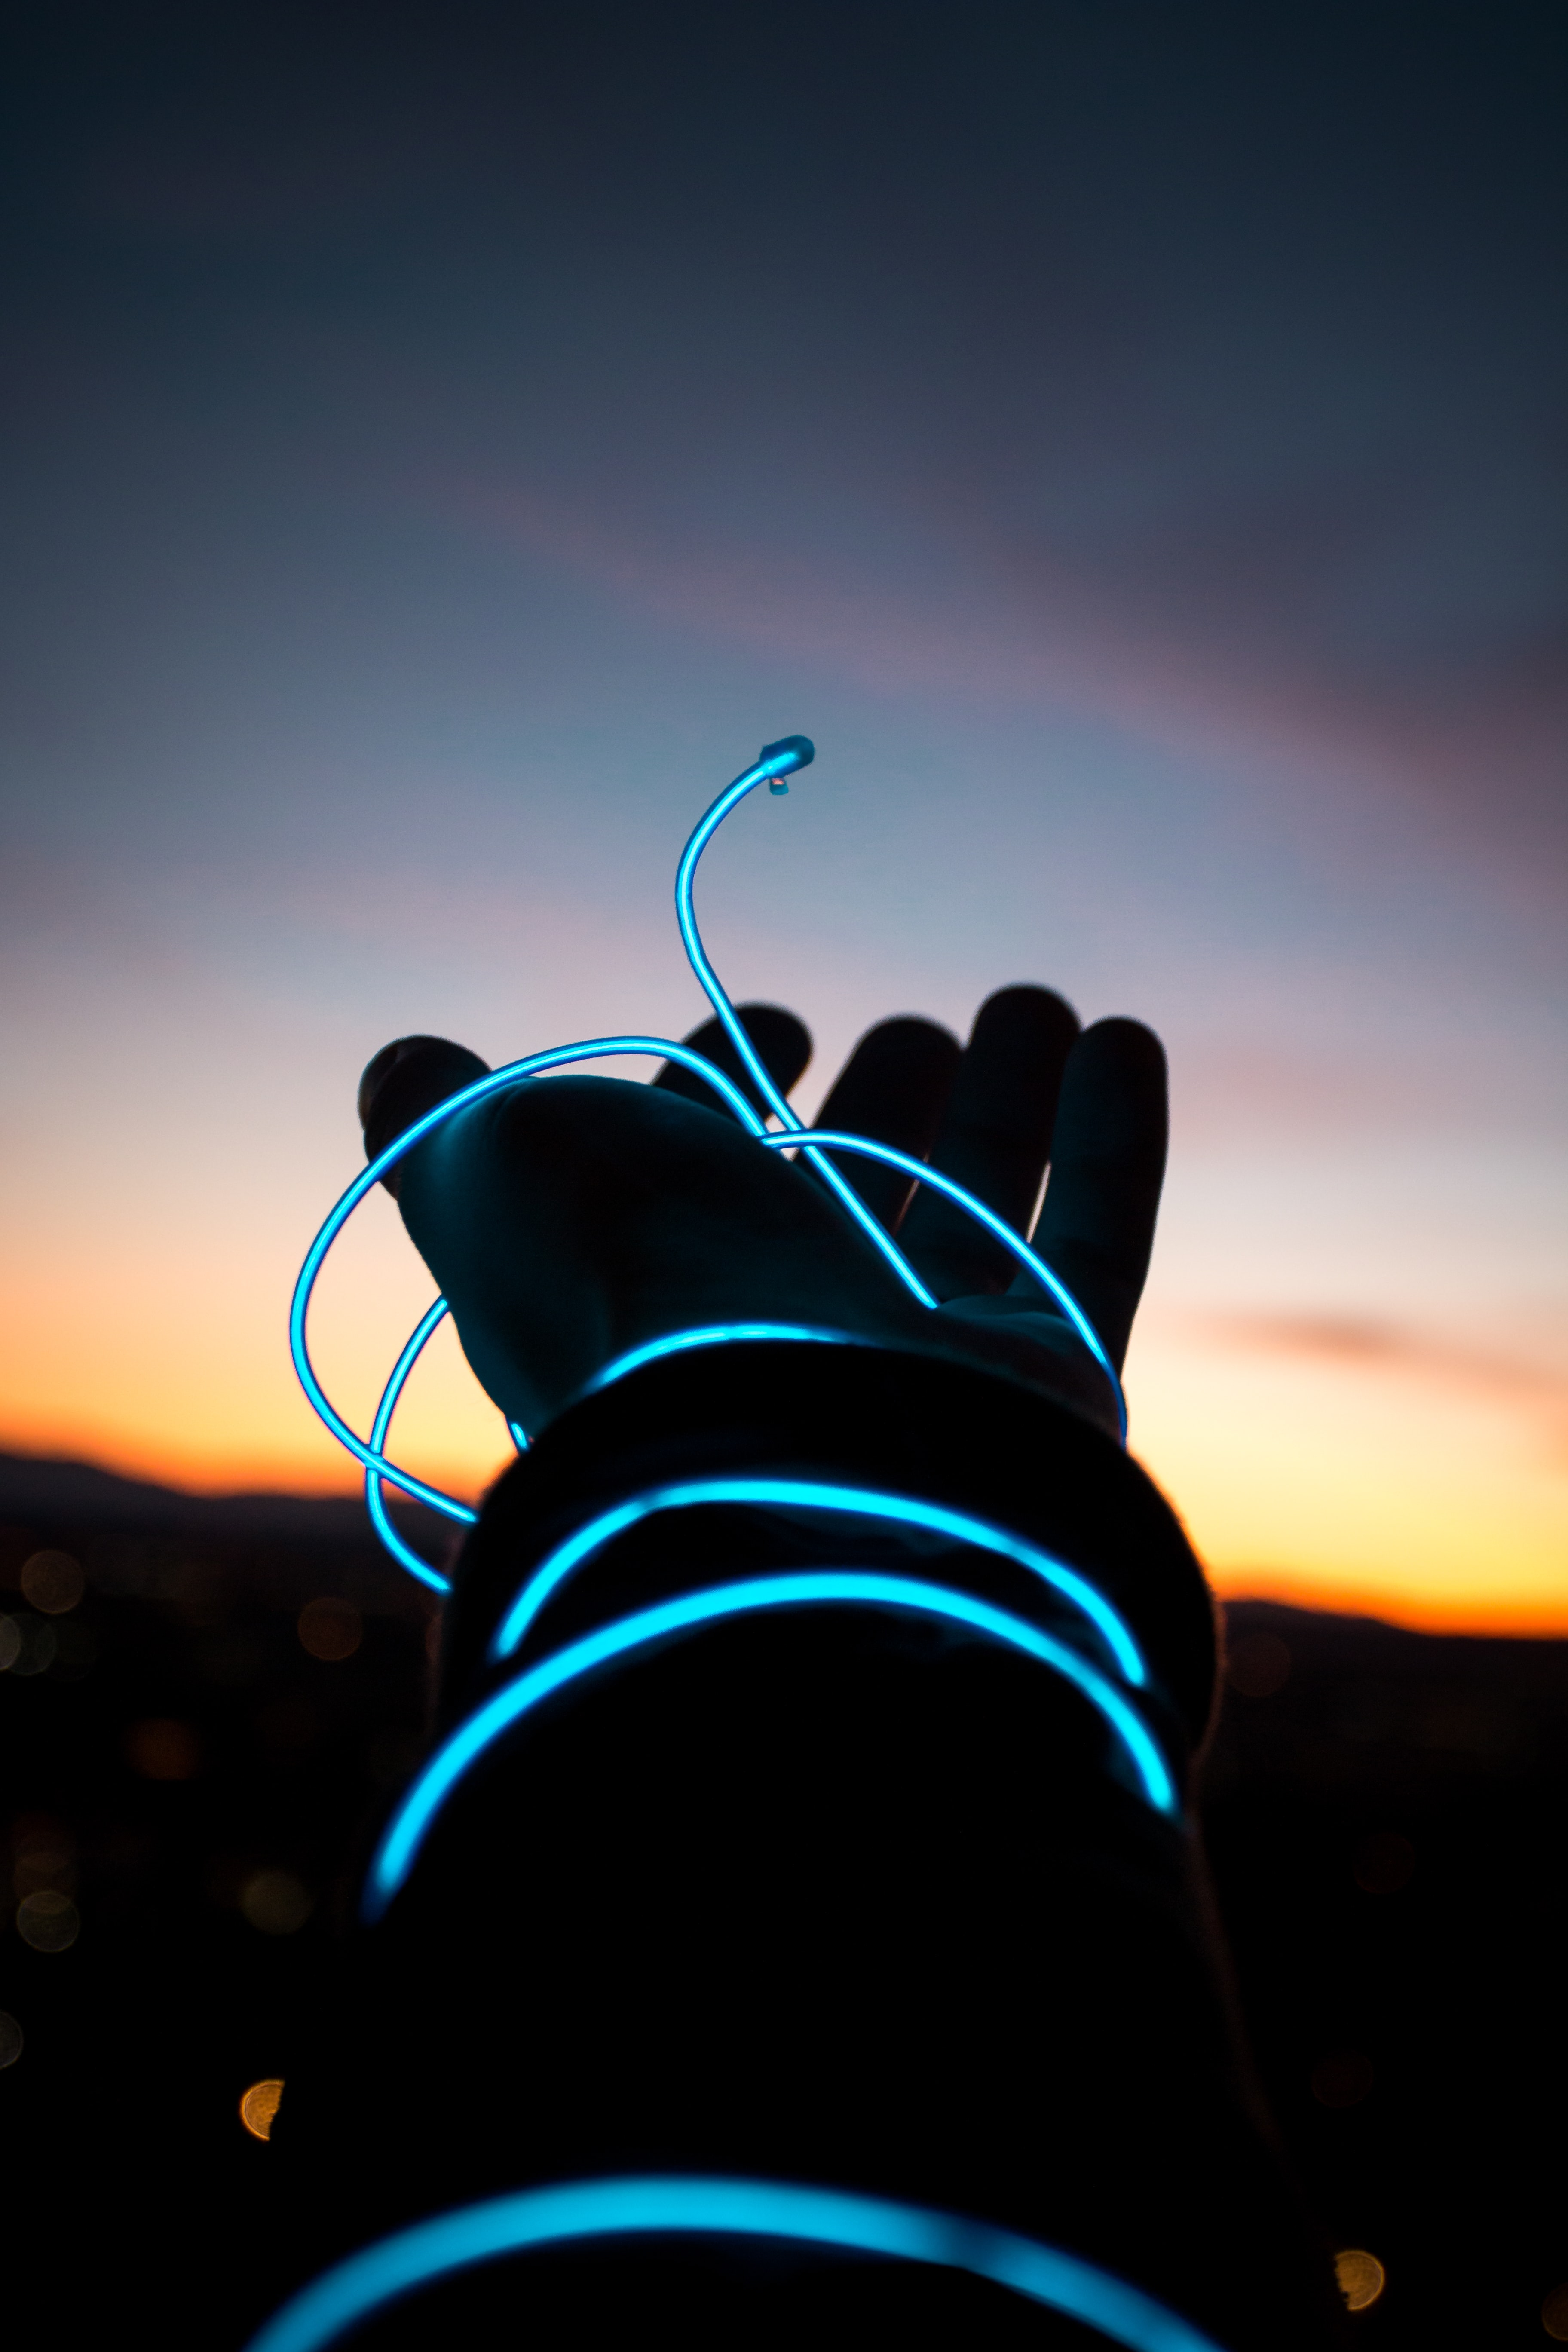 blue light wire on person's left hand